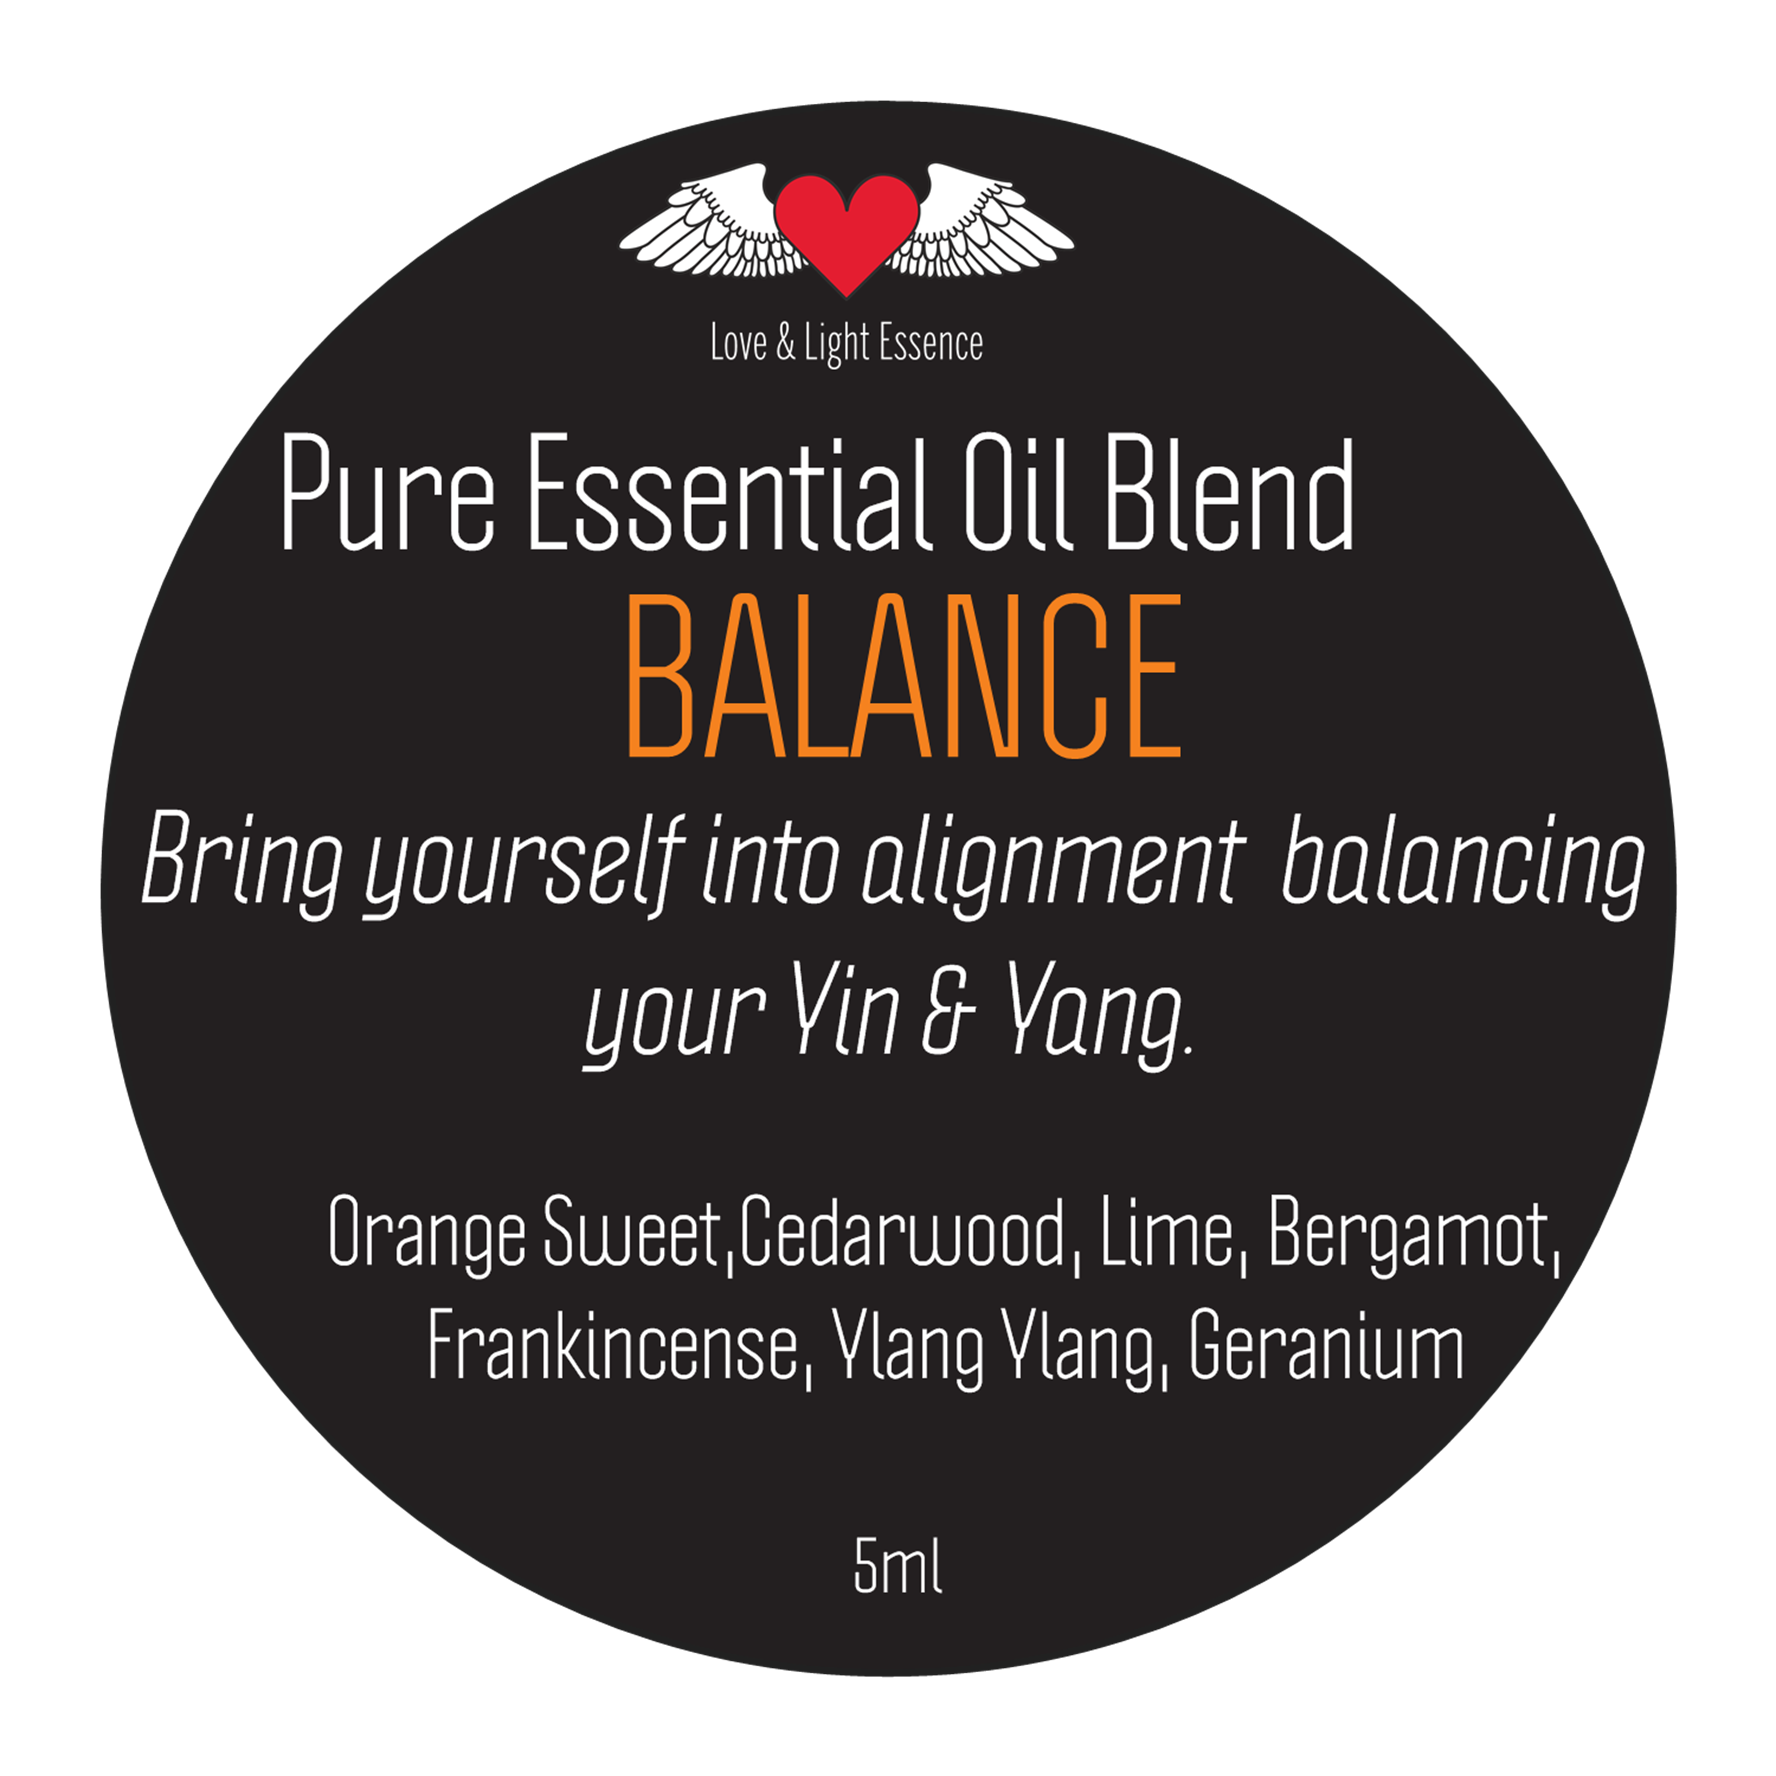 Pure Essential Oil Blend - BALANCE